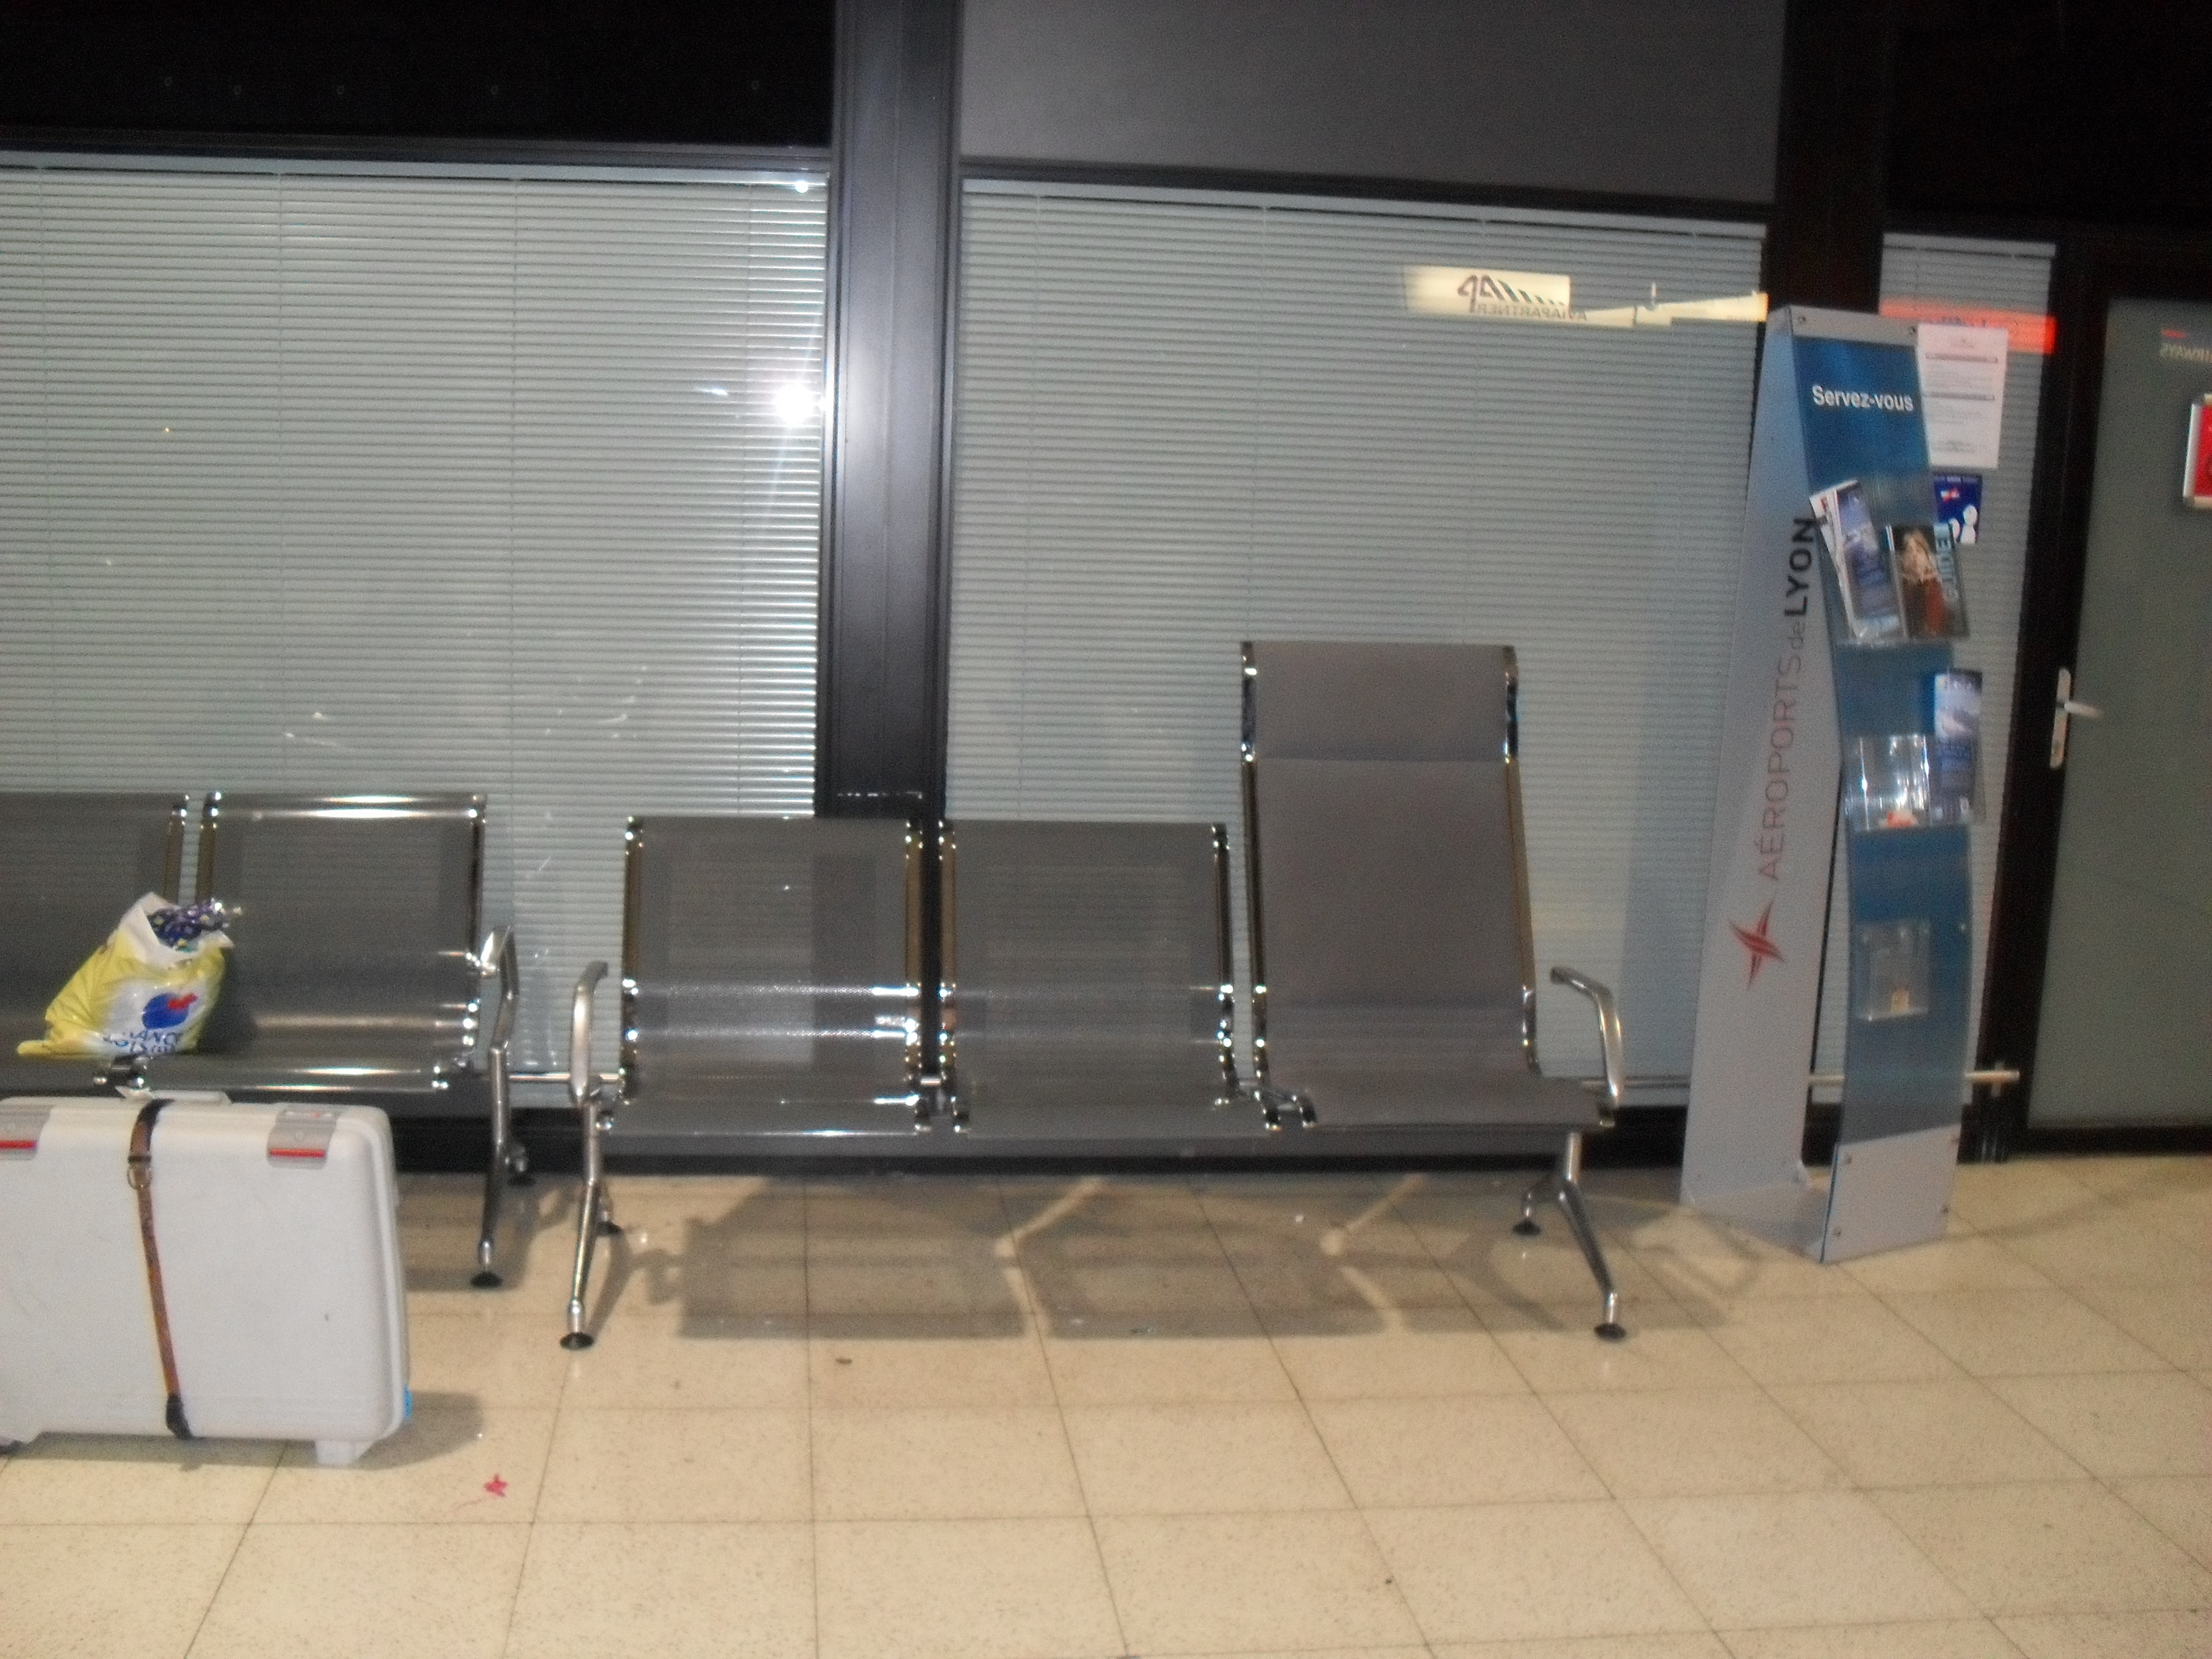 Lyon St Exupery Lyon Airport Photos Sleeping In Airports